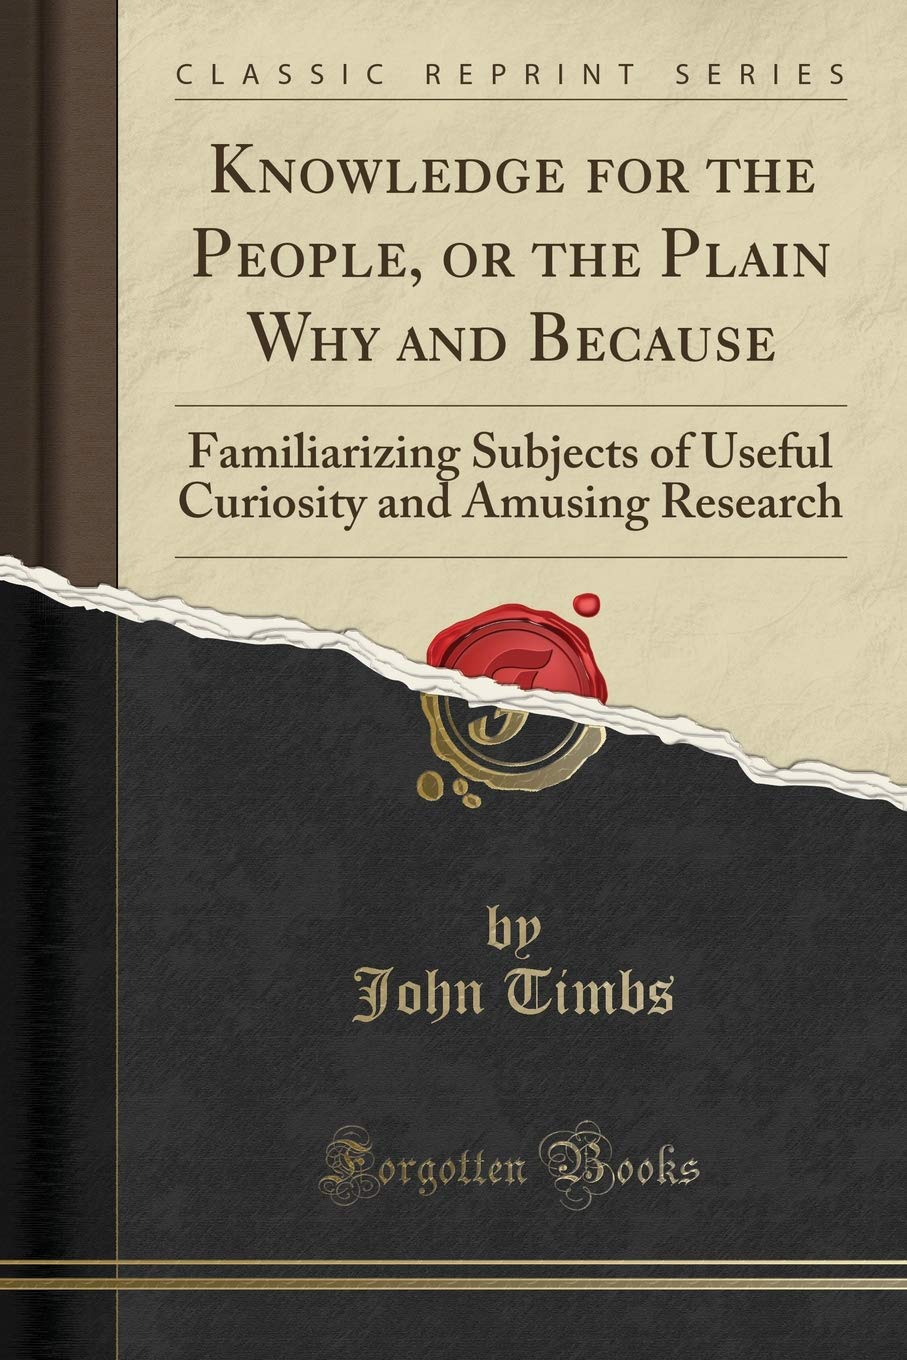 Download Knowledge for the People, or the Plain Why and Because: Familiarizing Subjects of Useful Curiosity and Amusing Research (Classic Reprint) pdf epub